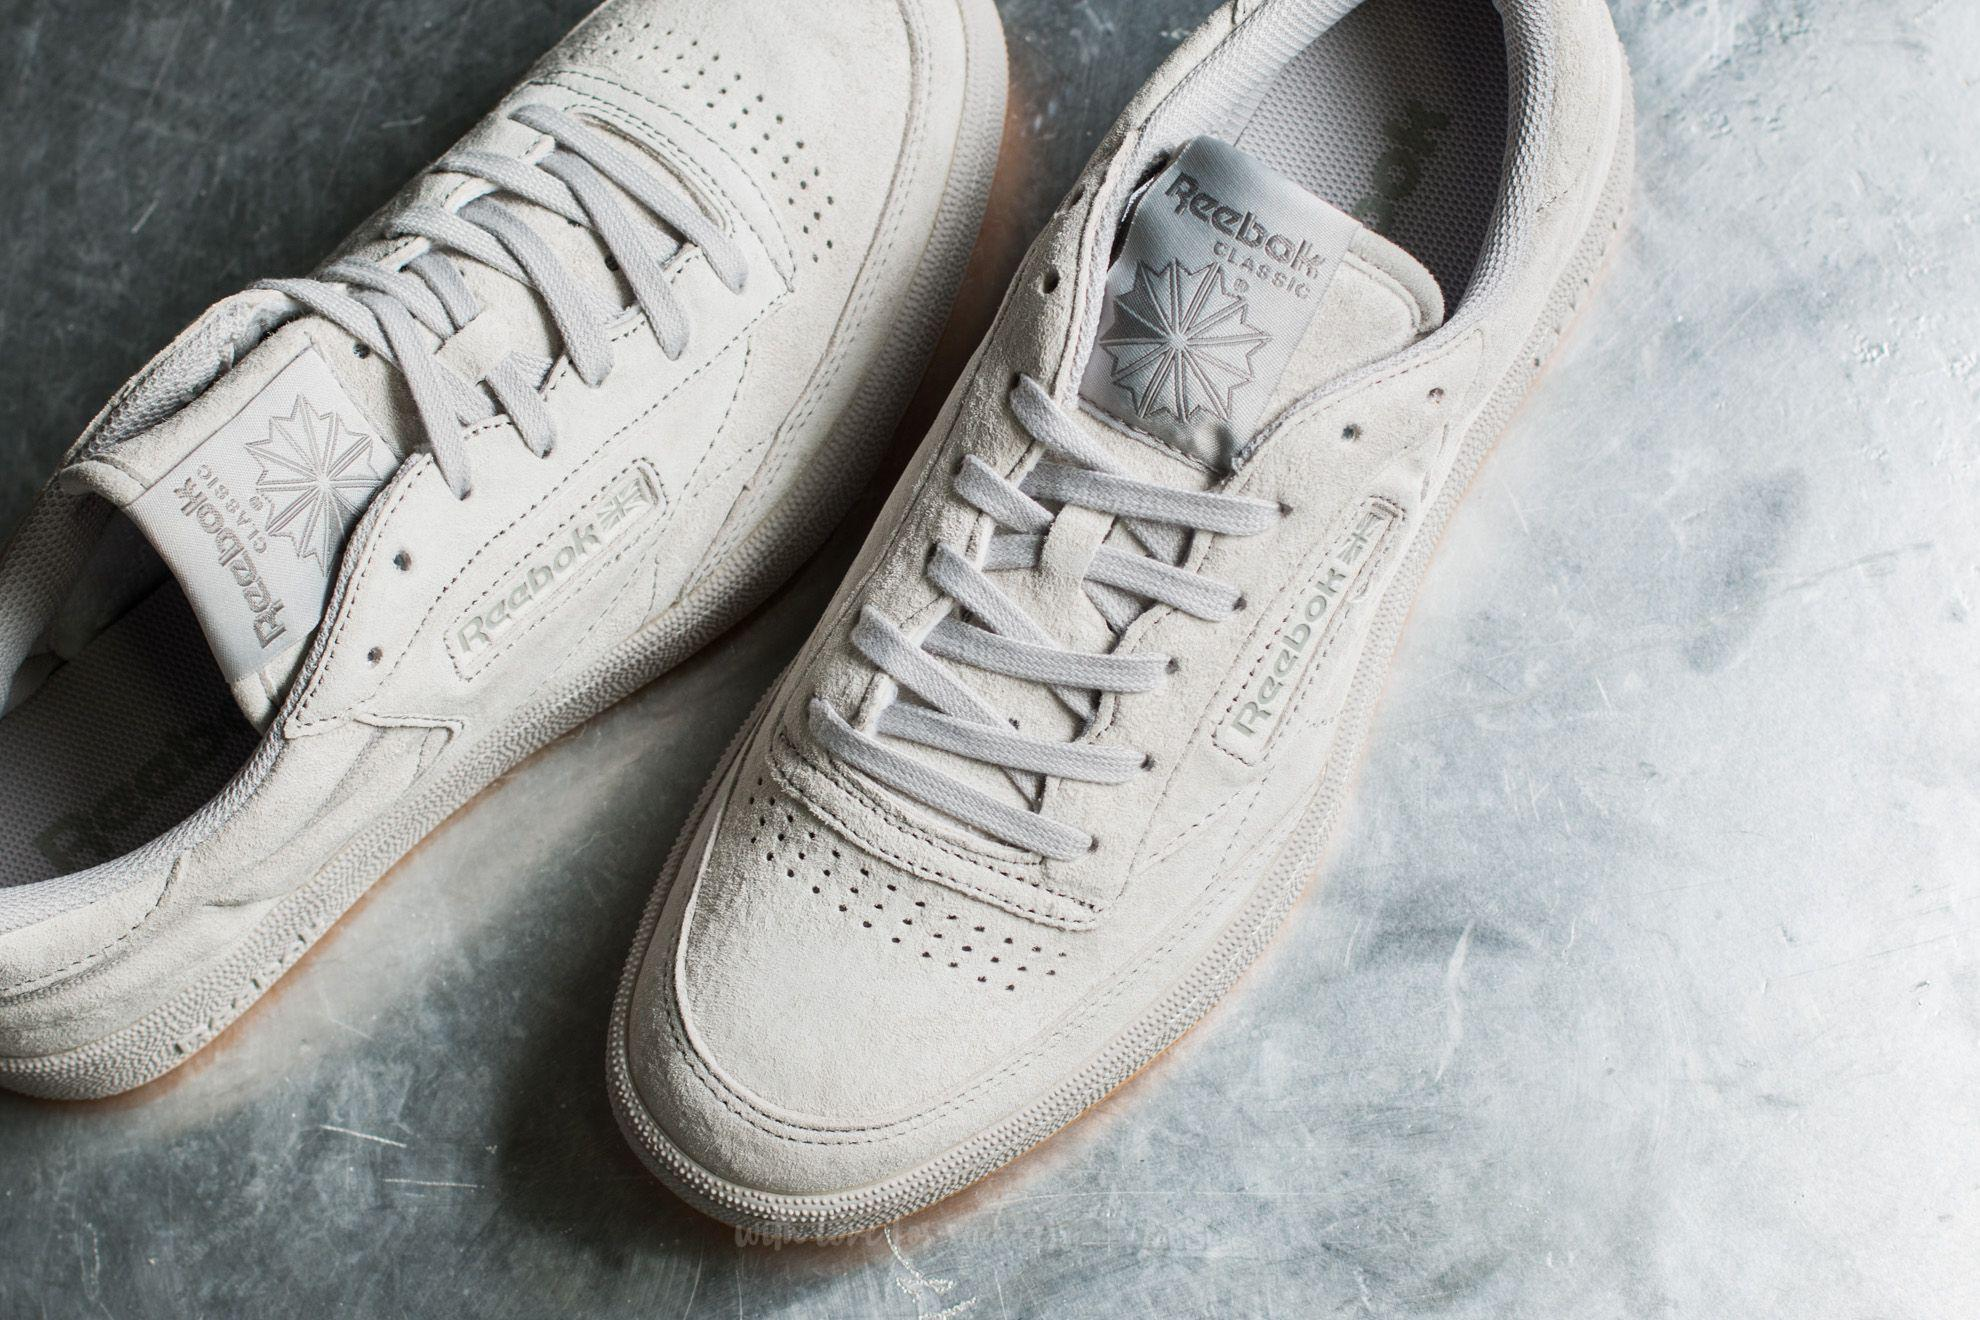 Lyst - Reebok Club C 85 Tg Steel  Carbon-gum in Gray for Men 6f78628d6